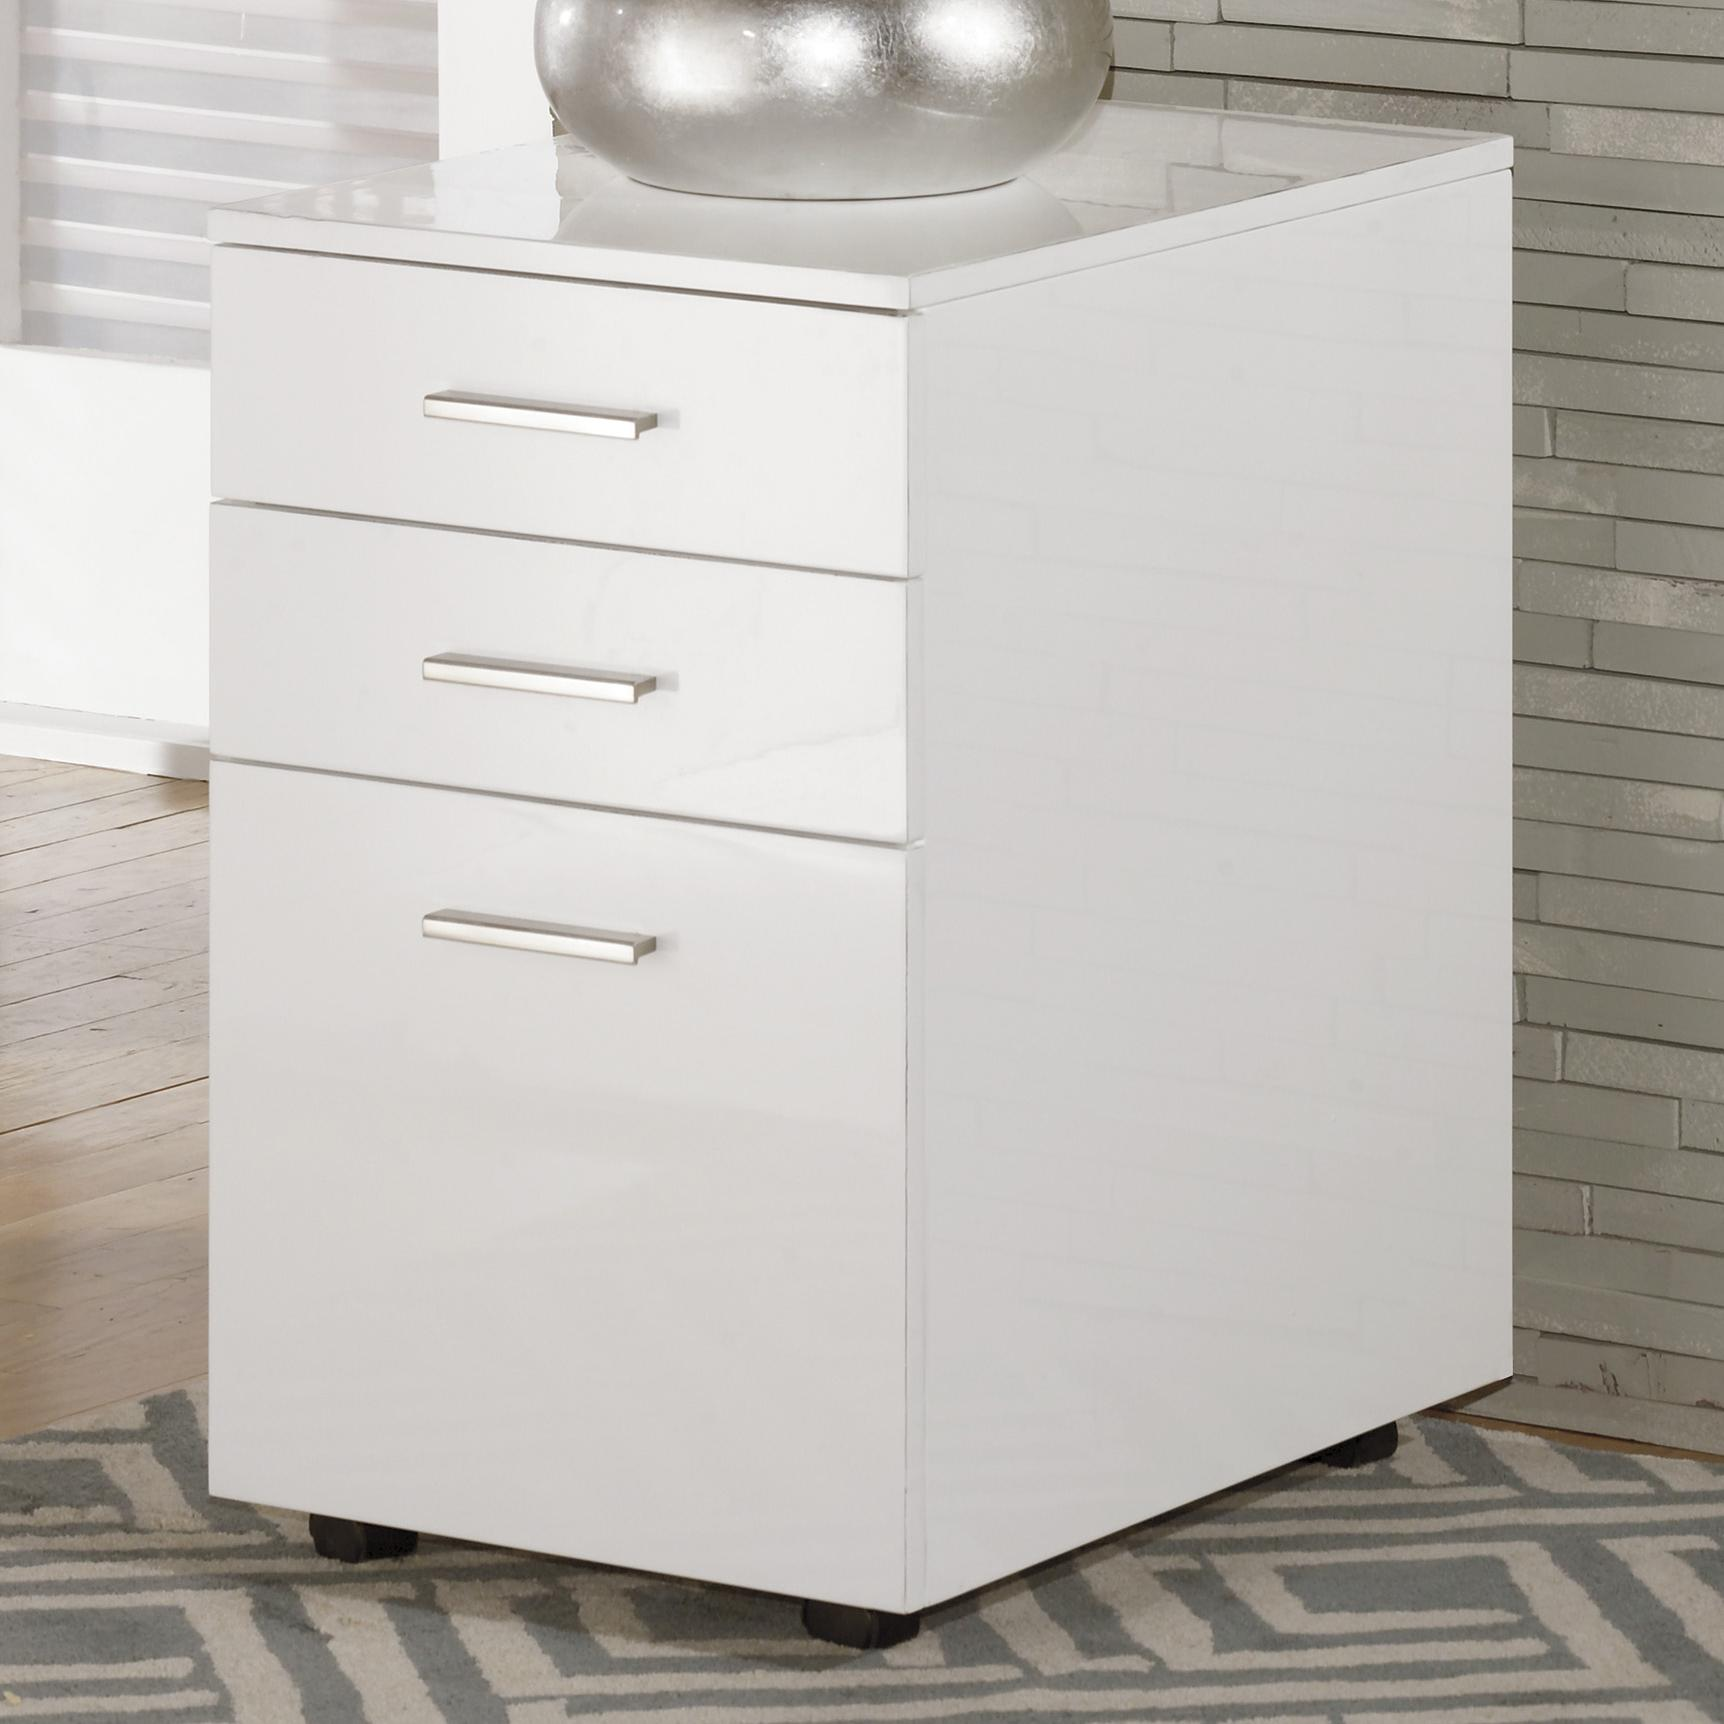 Full Gloss White File Cabinet with Casters by Signature